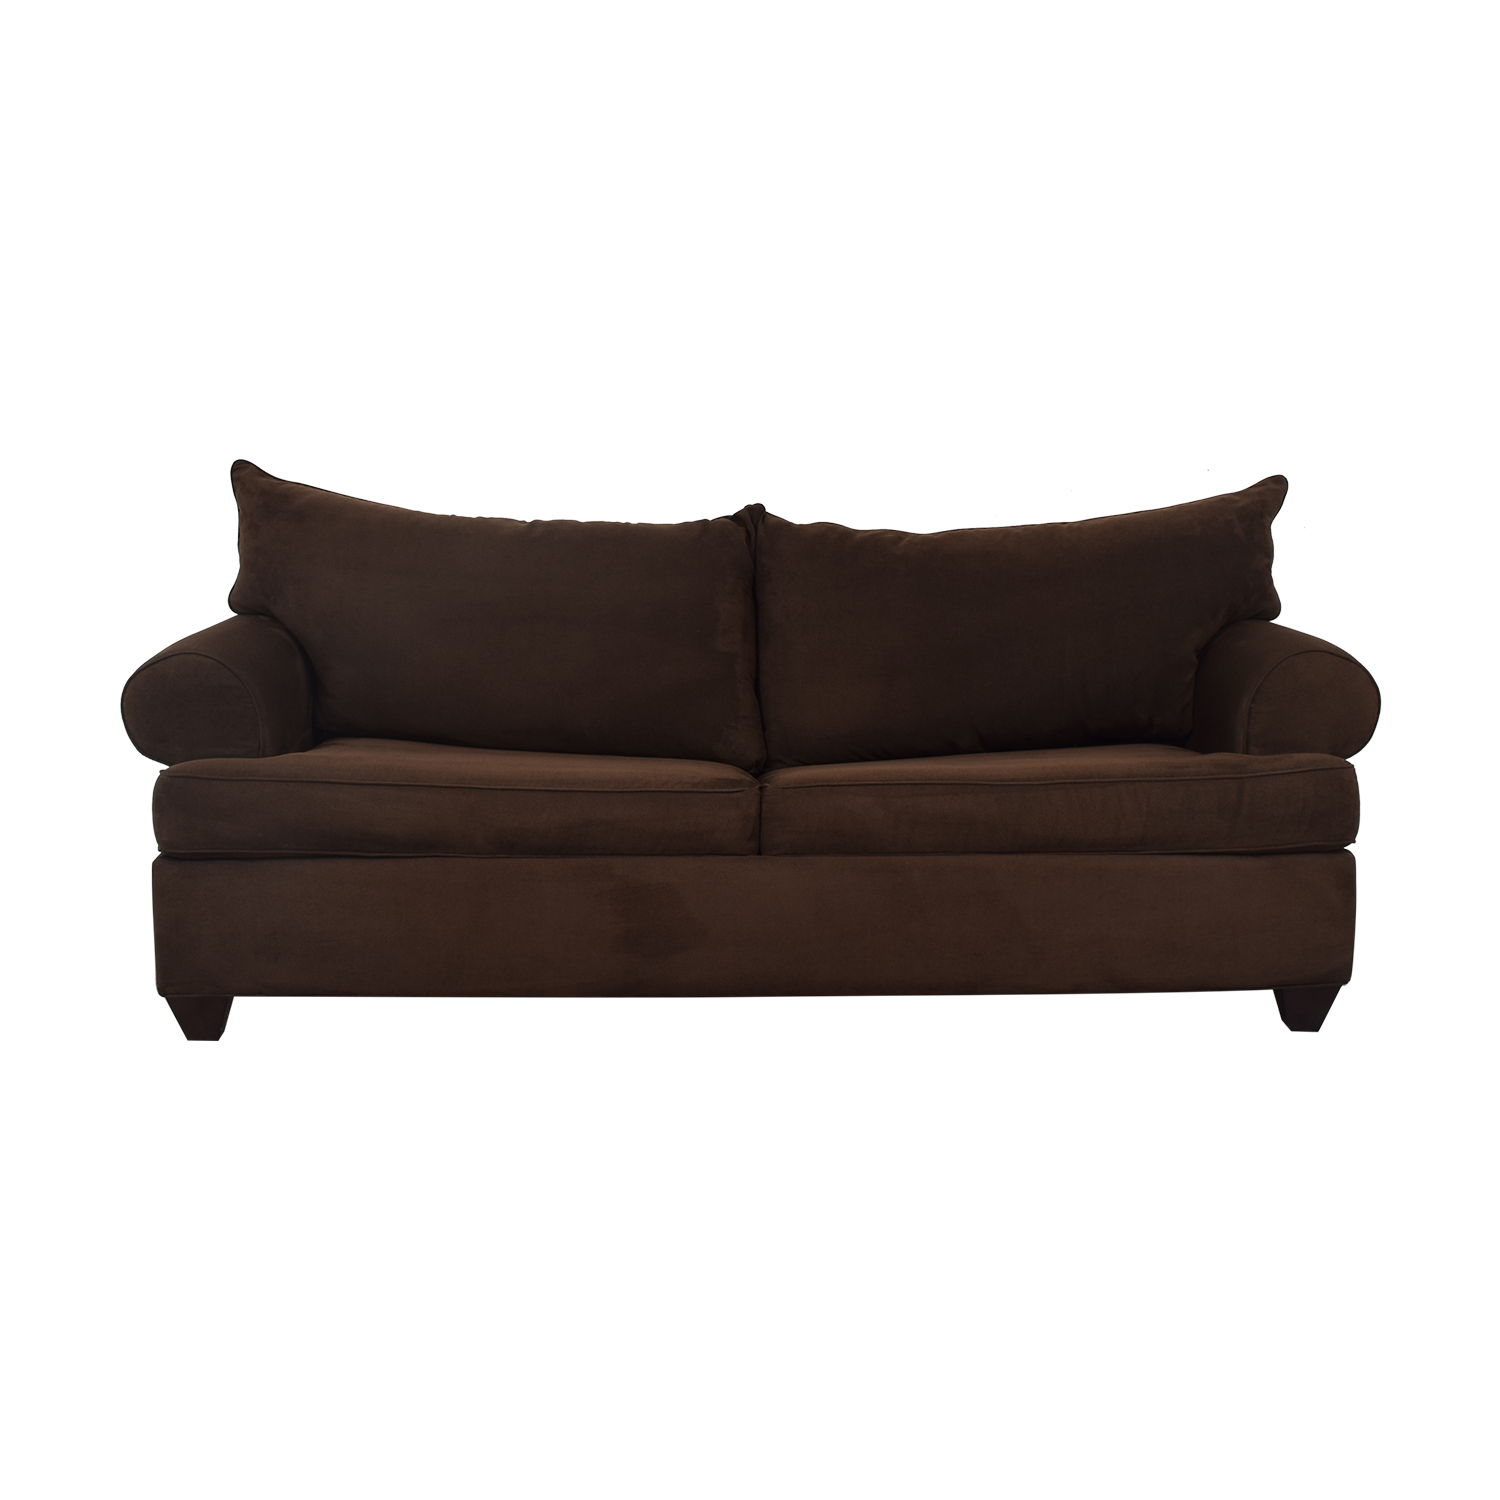 shop Raymour & Flanigan Two Cushion Sleeper Sofa Raymour & Flanigan